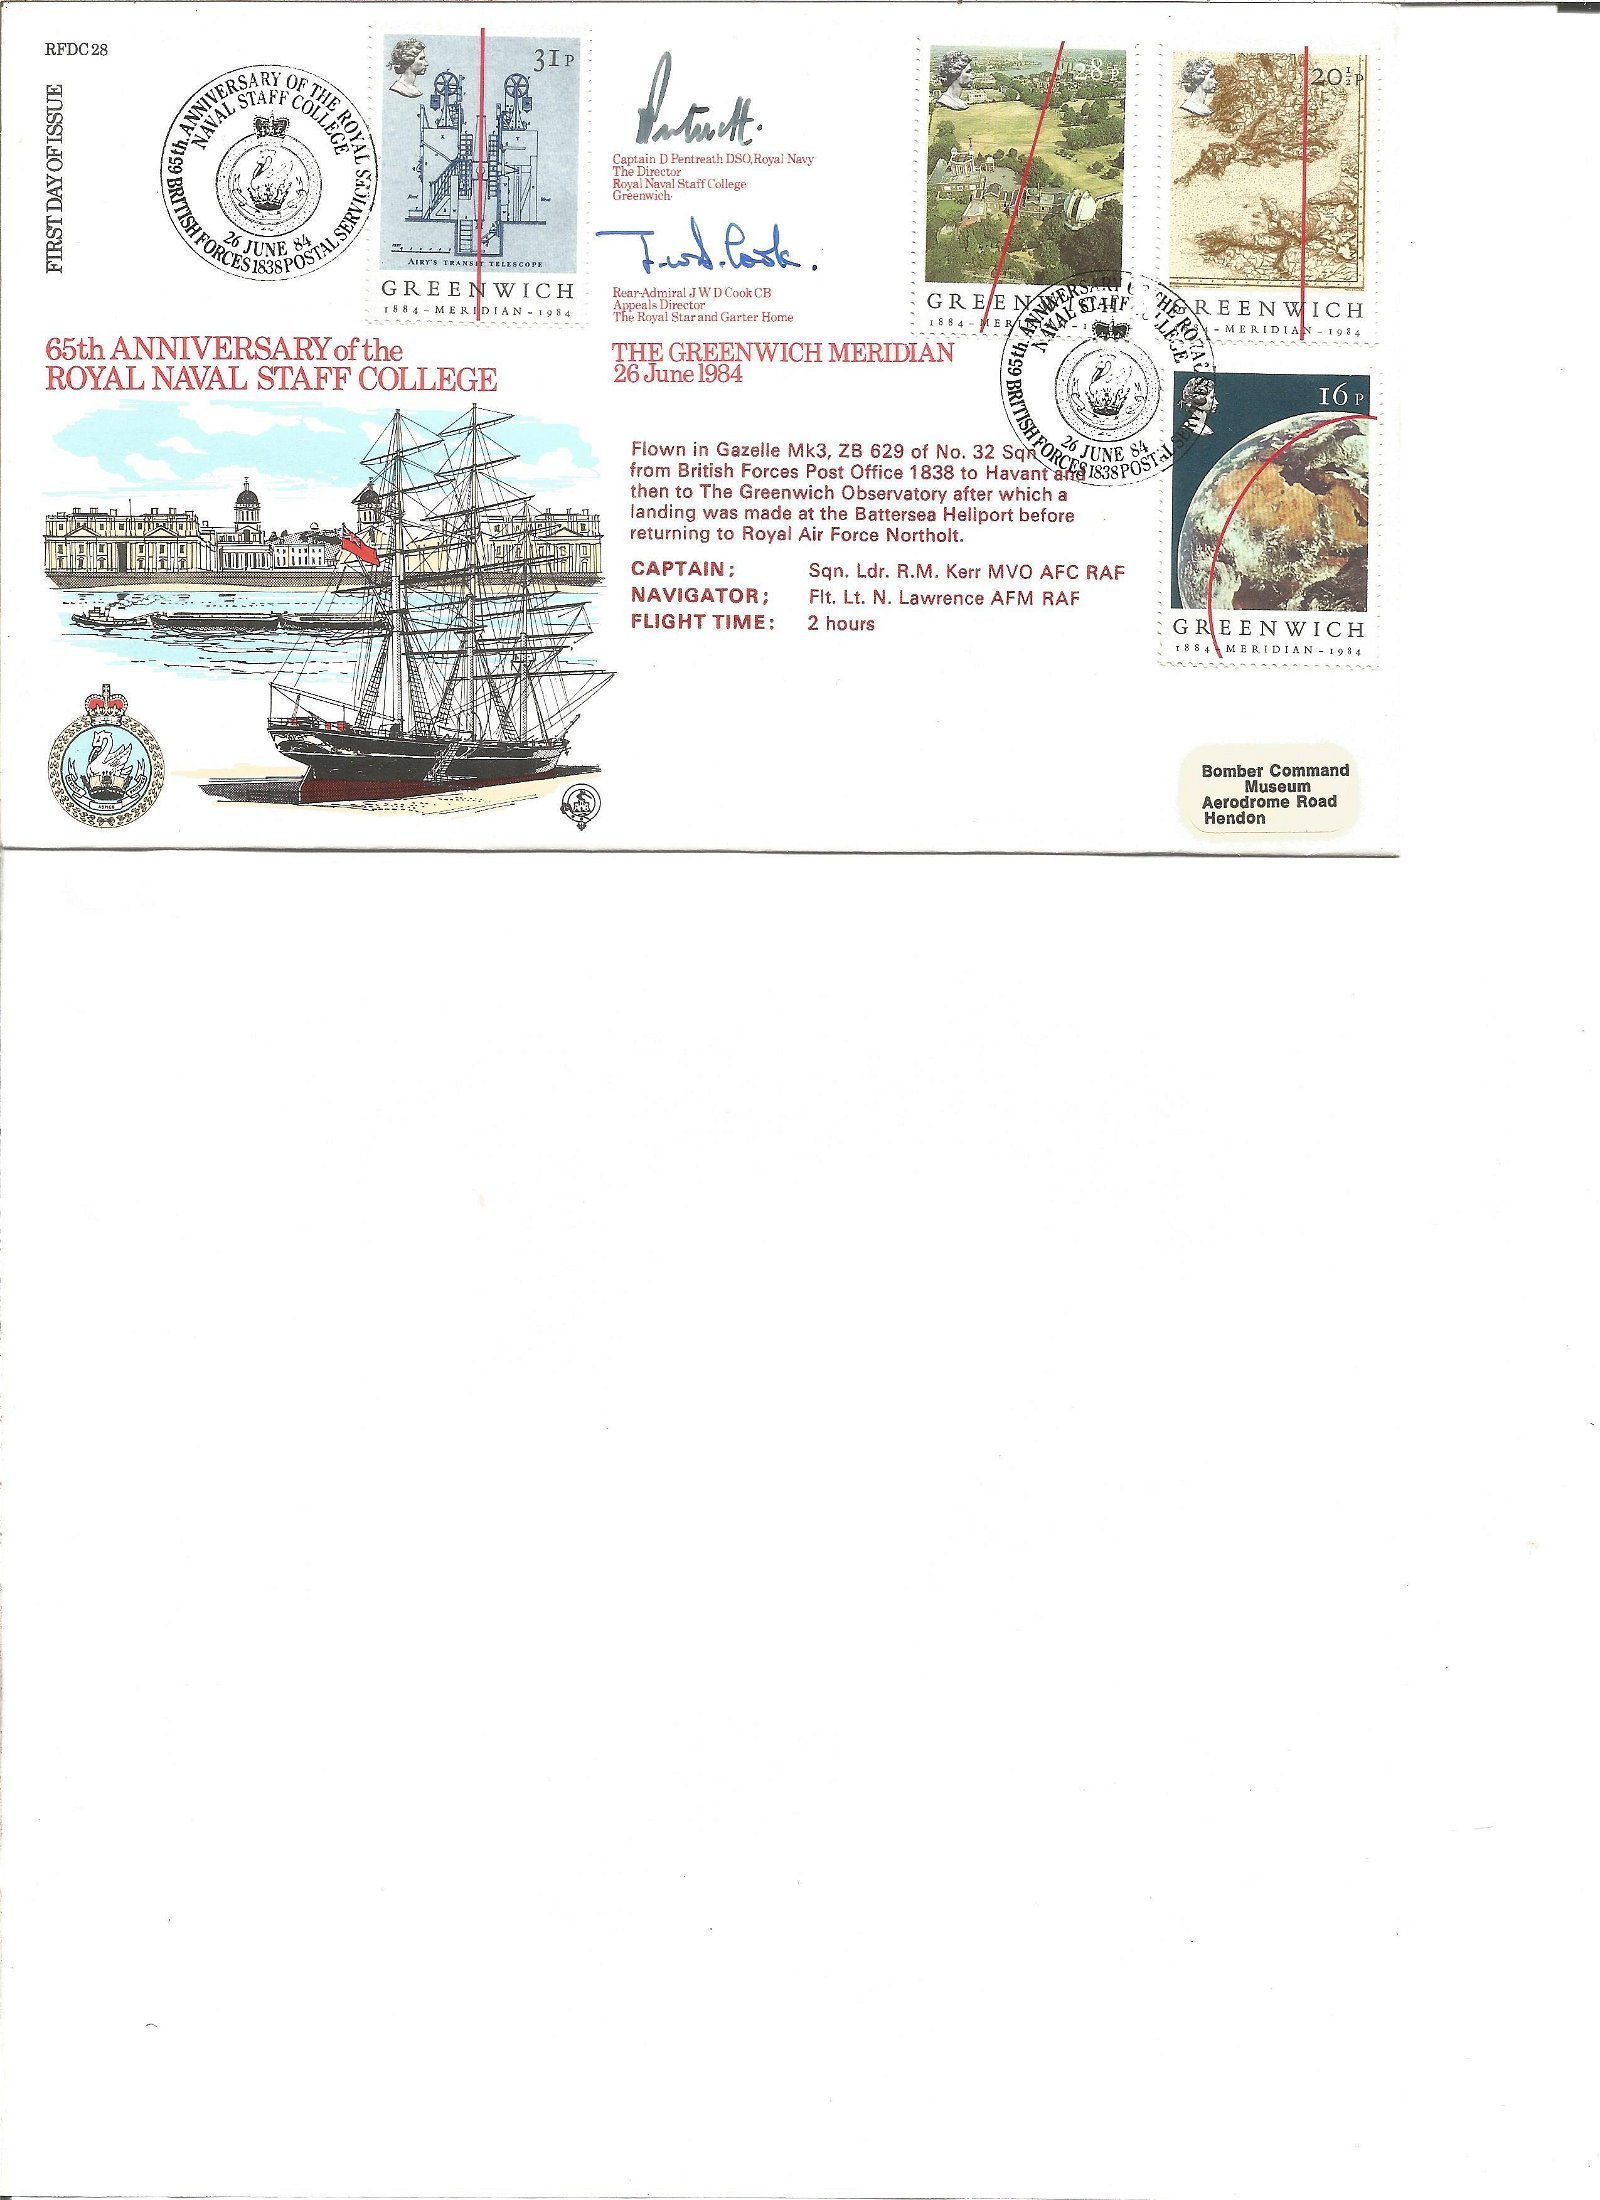 Cptn Pentreath and Rear Admiral Cook signed cove. Good